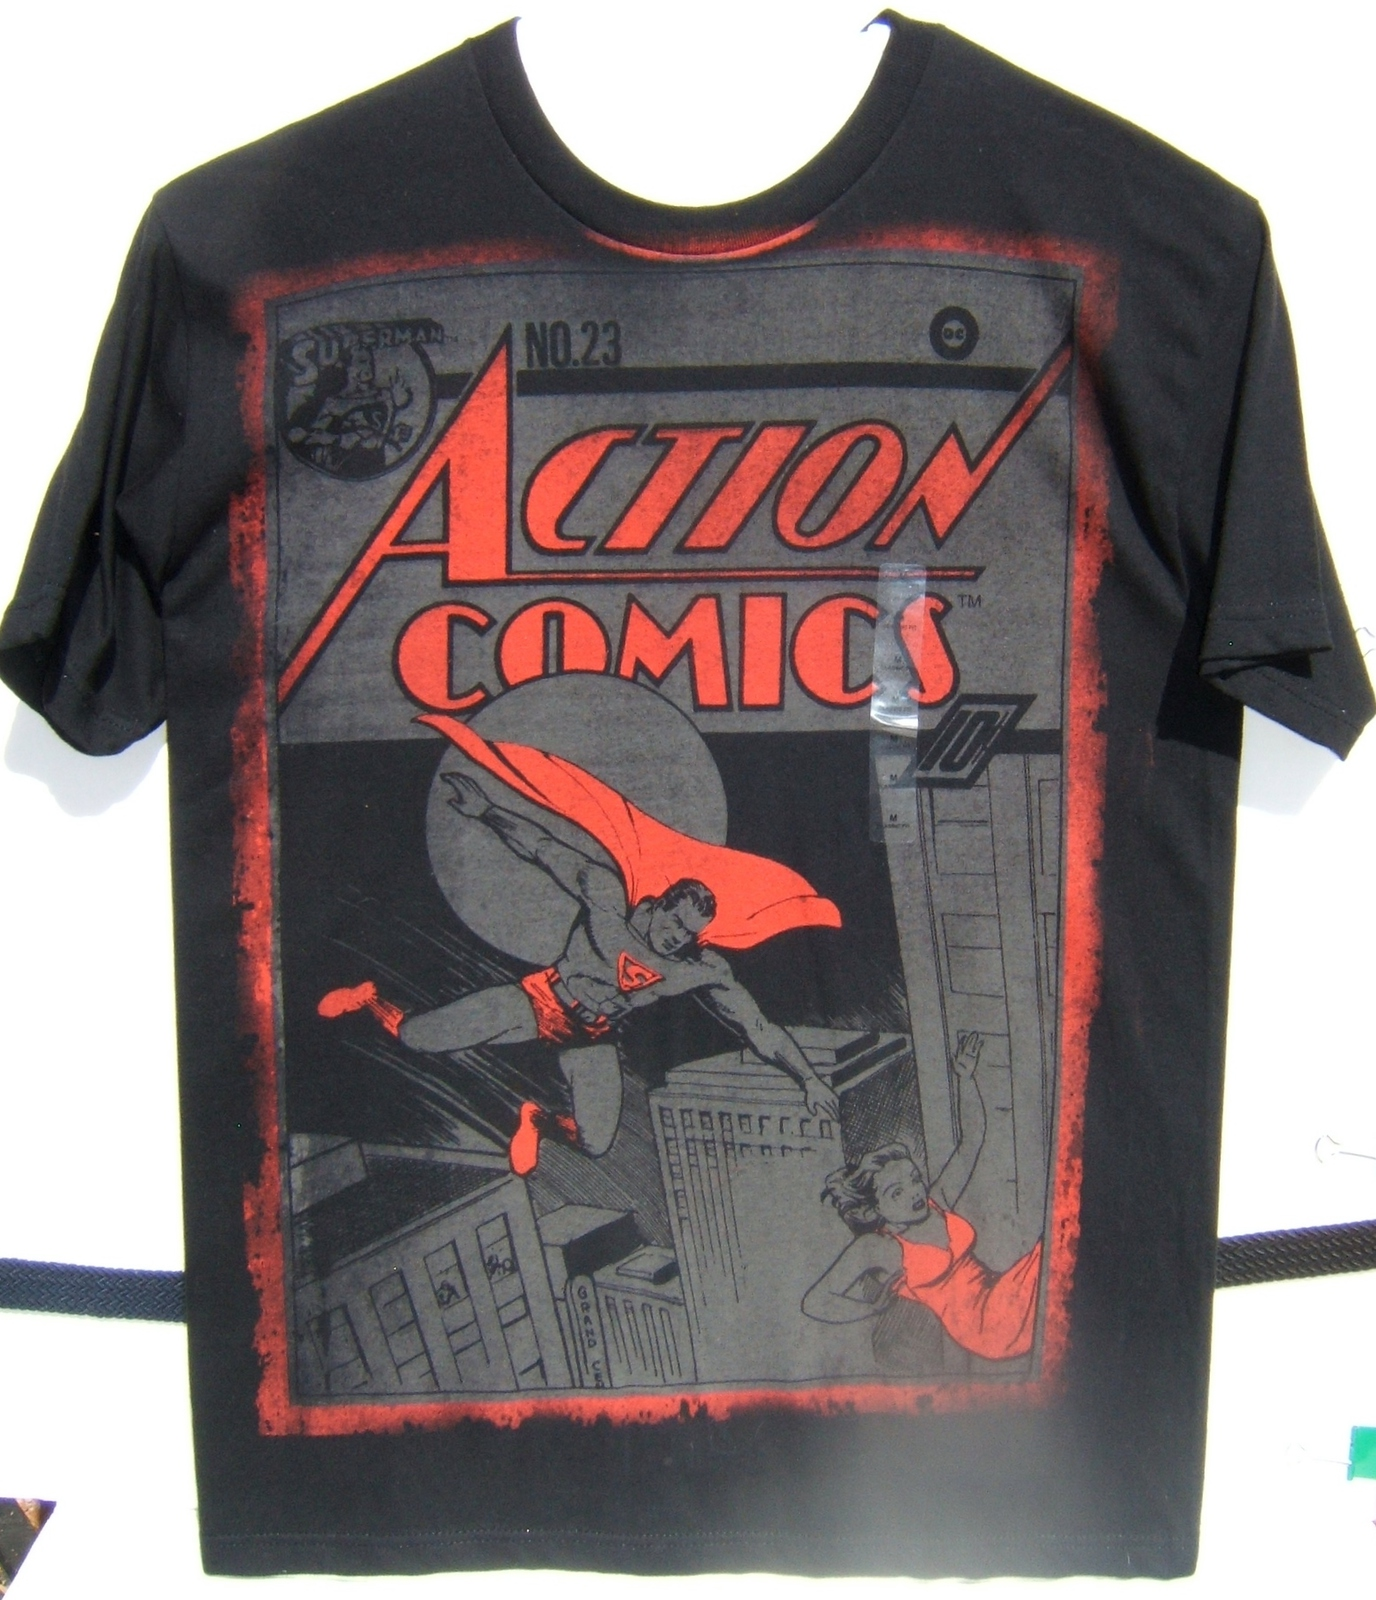 DC Superman Action Comics #23 Short Sleeve T-Shirt Medium100% Cotton NEW w/Tags